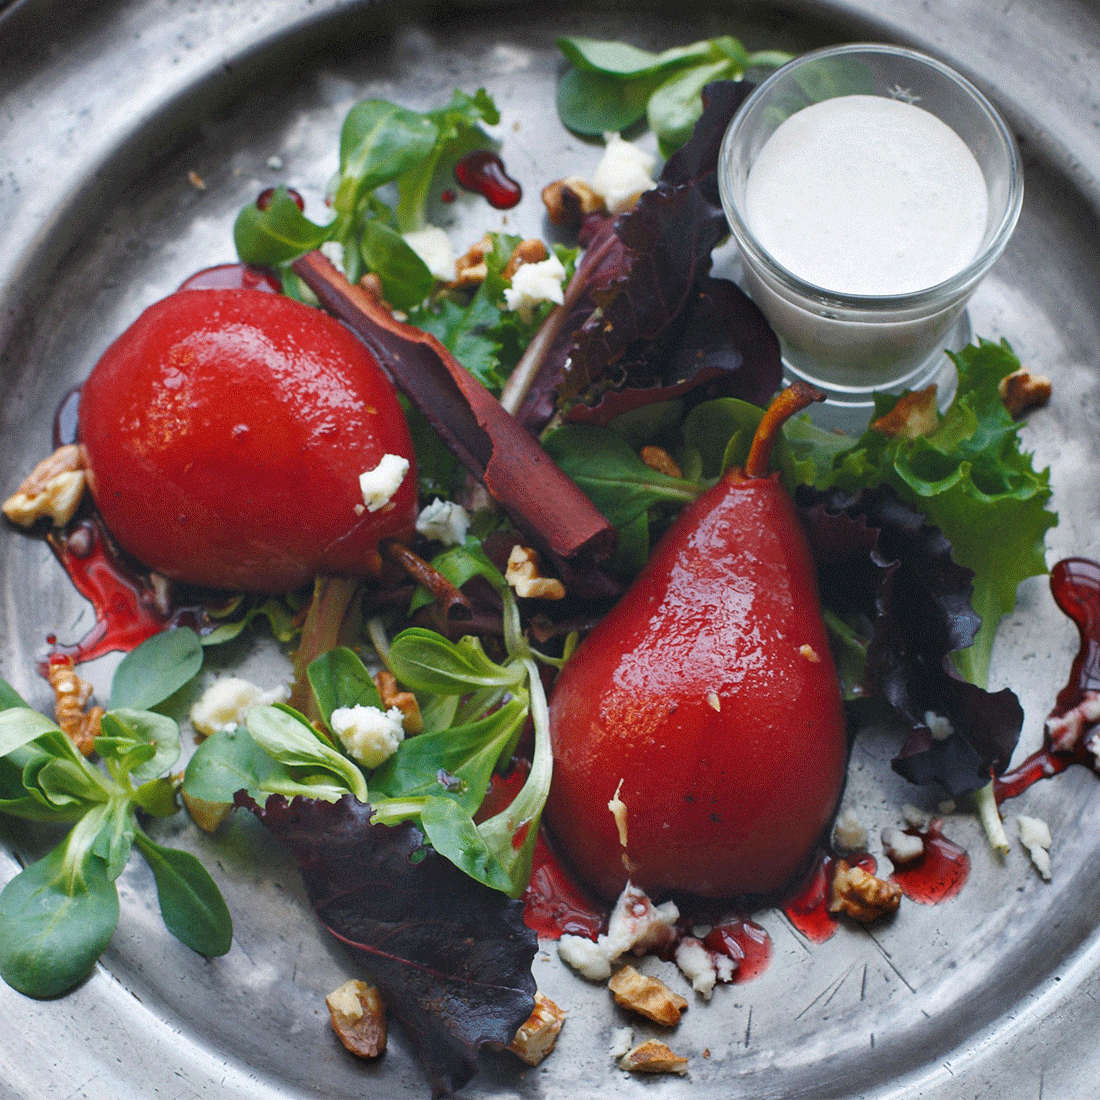 Mulled Pear Salad with Roquefort Dressing and Al Rabie Berry Mix